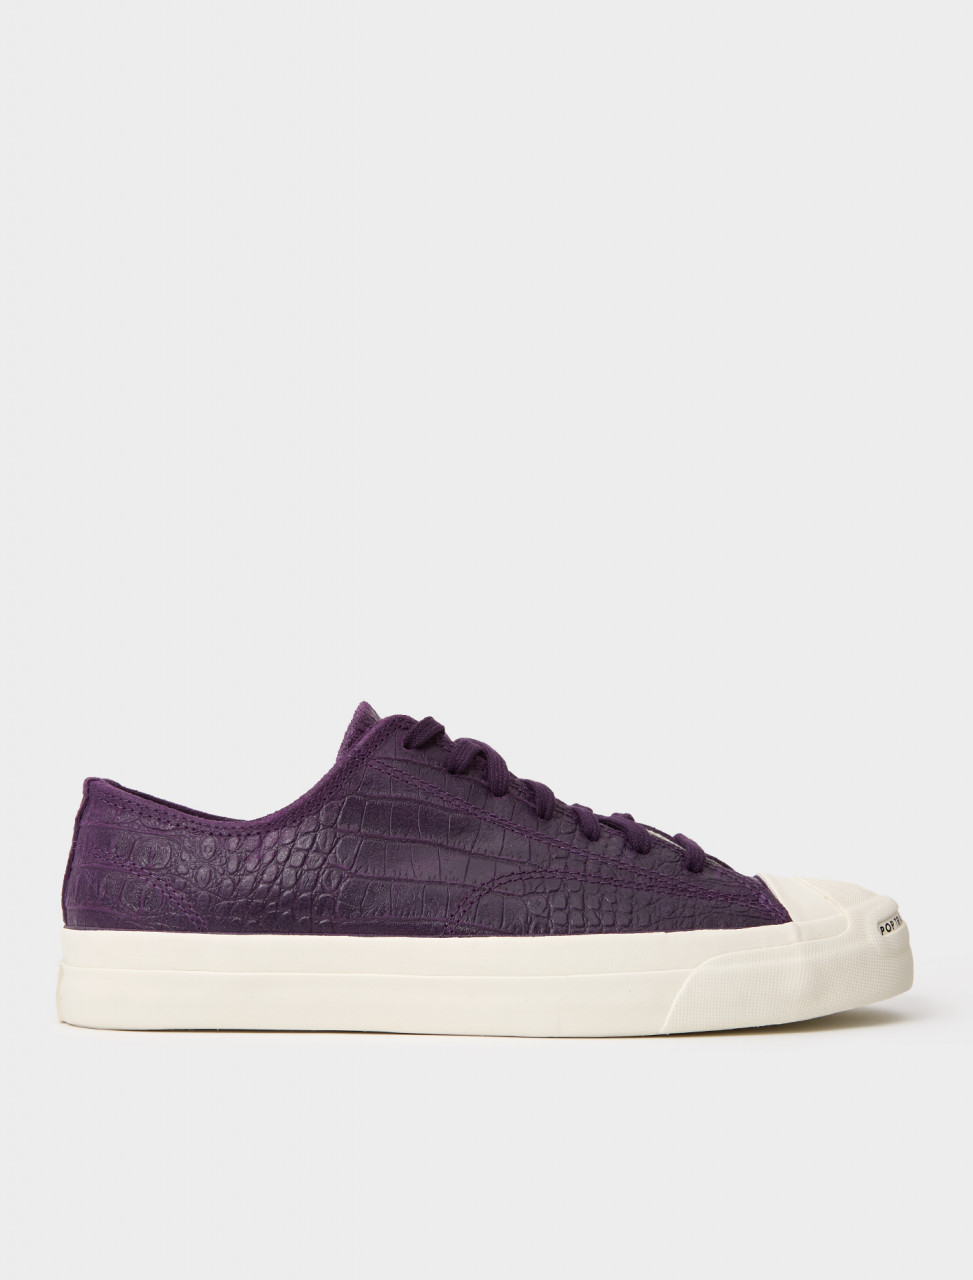 221-170544C-500 CONVERSE JACK PURCELL PRO O GRAND PURPLE BLACK